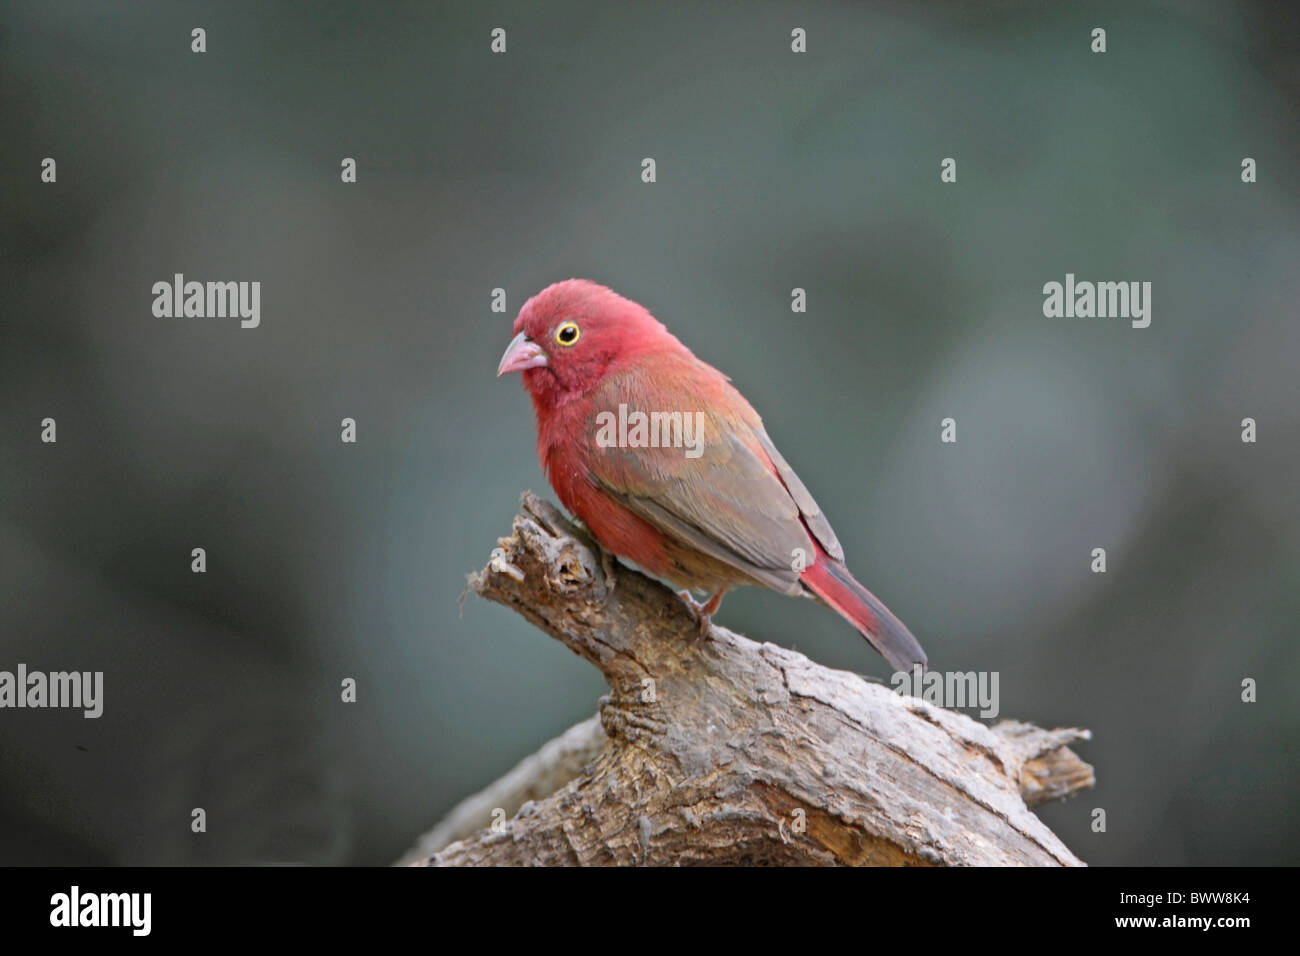 Red-billed Firefinch (Lagonosticta senegala) adult male, perched on branch, Gambia, december Stock Photo